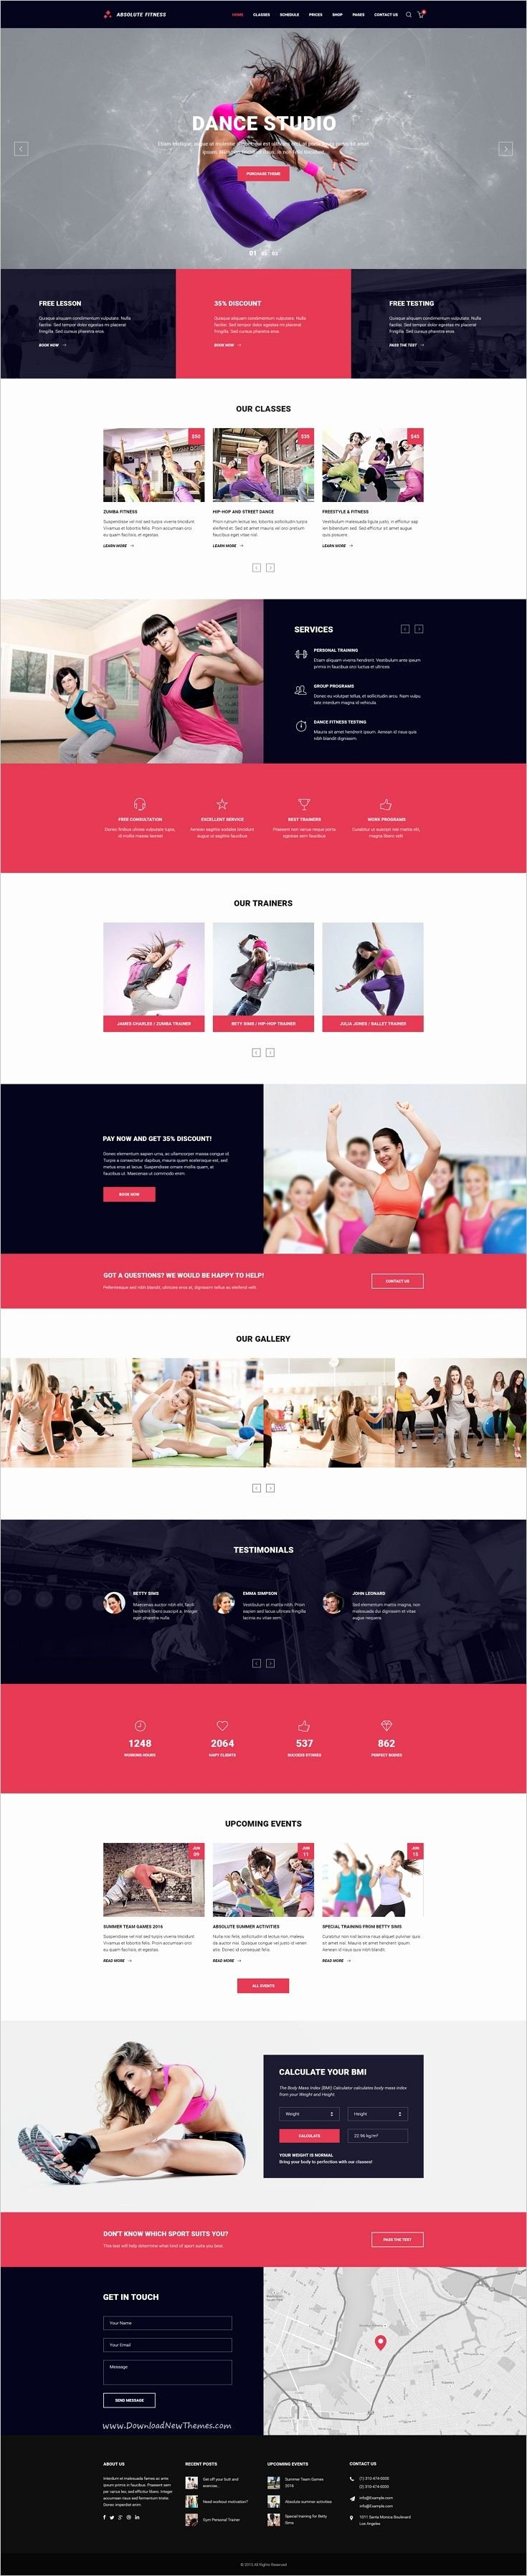 Personal Trainer Website Template Luxury Best 25 Boxing Fitness Ideas On Pinterest